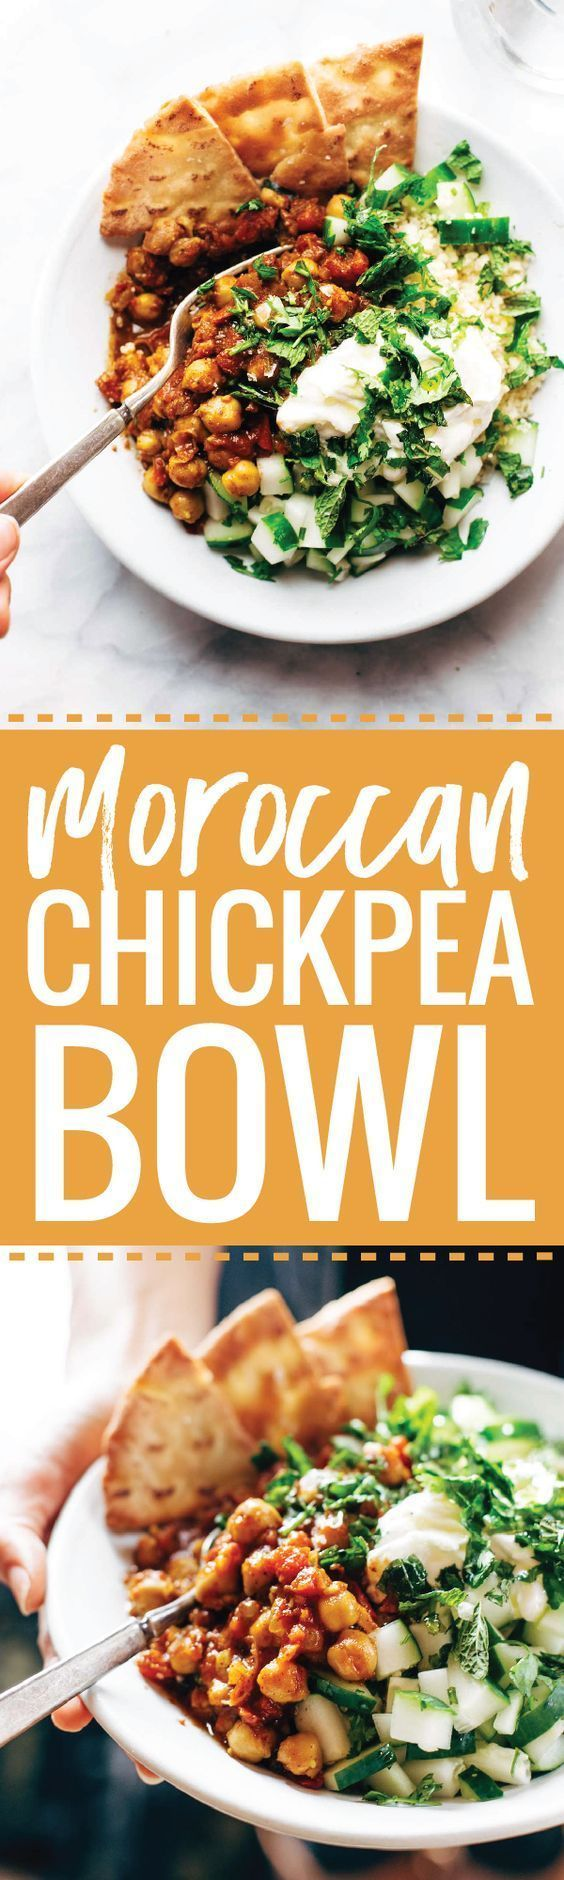 Detox Moroccan Chickpea Glow Bowls: clean eating meets comfort food! vegetarian / vegan. | pinchofyum.com